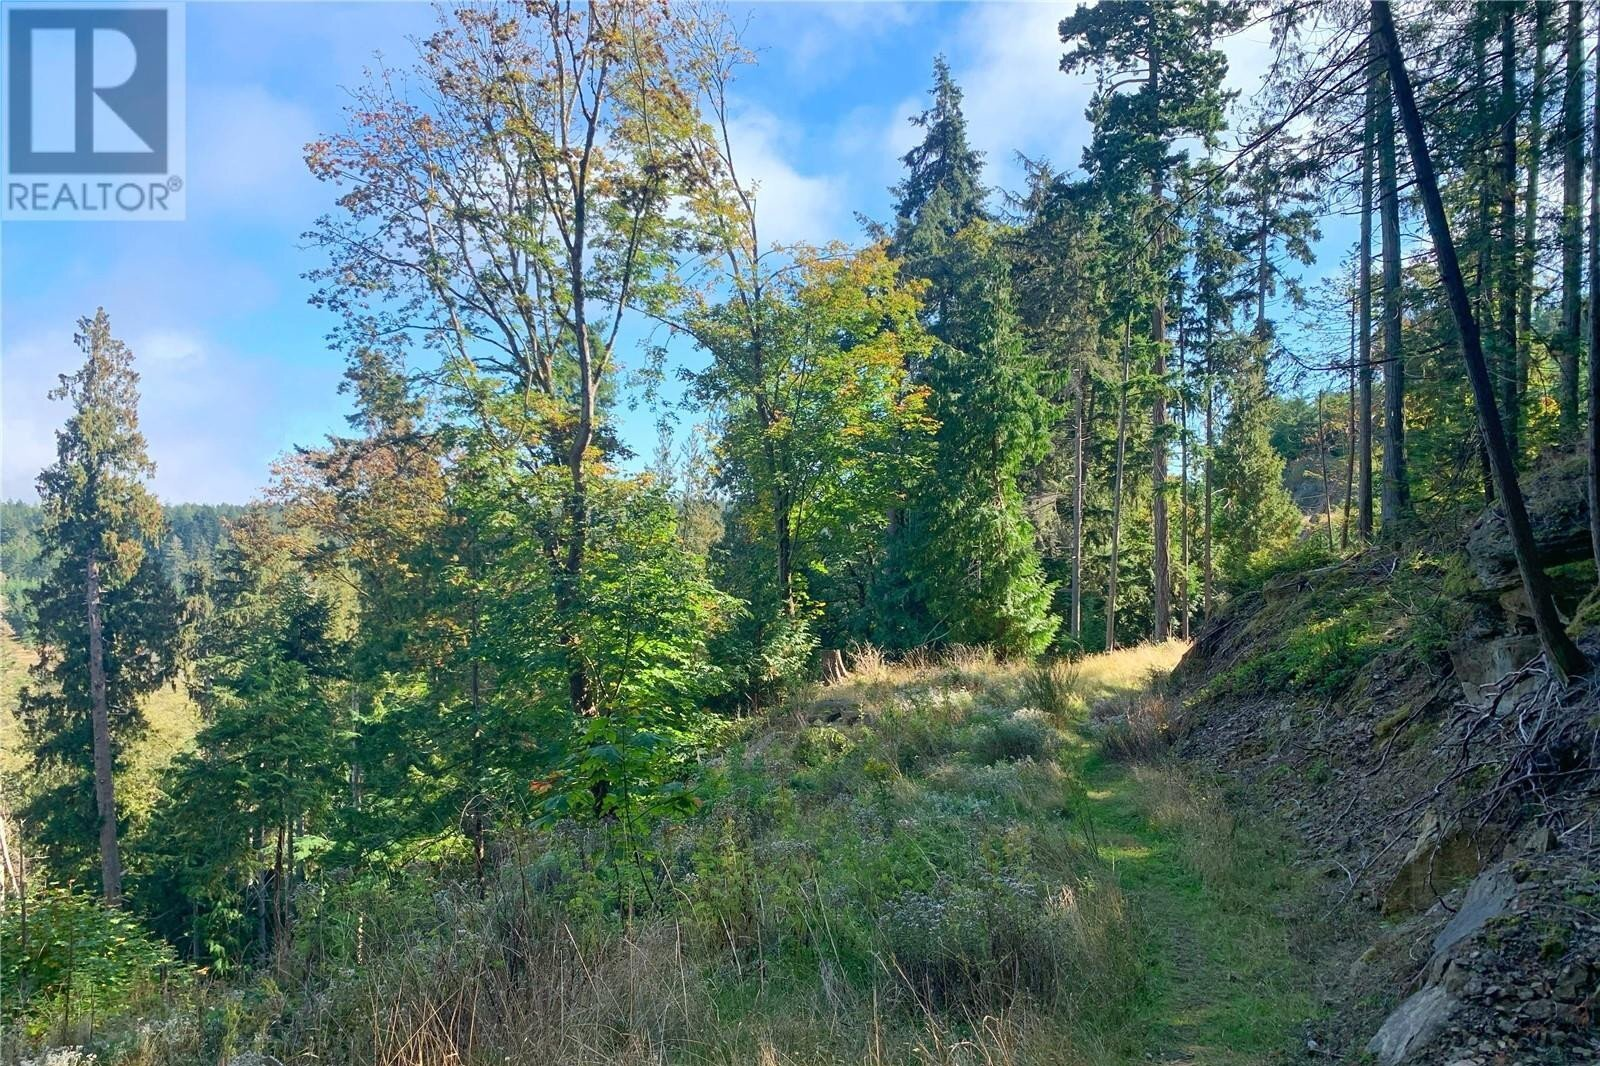 Residential property for sale at 0 Spruce Ave Gabriola Island British Columbia - MLS: 858022